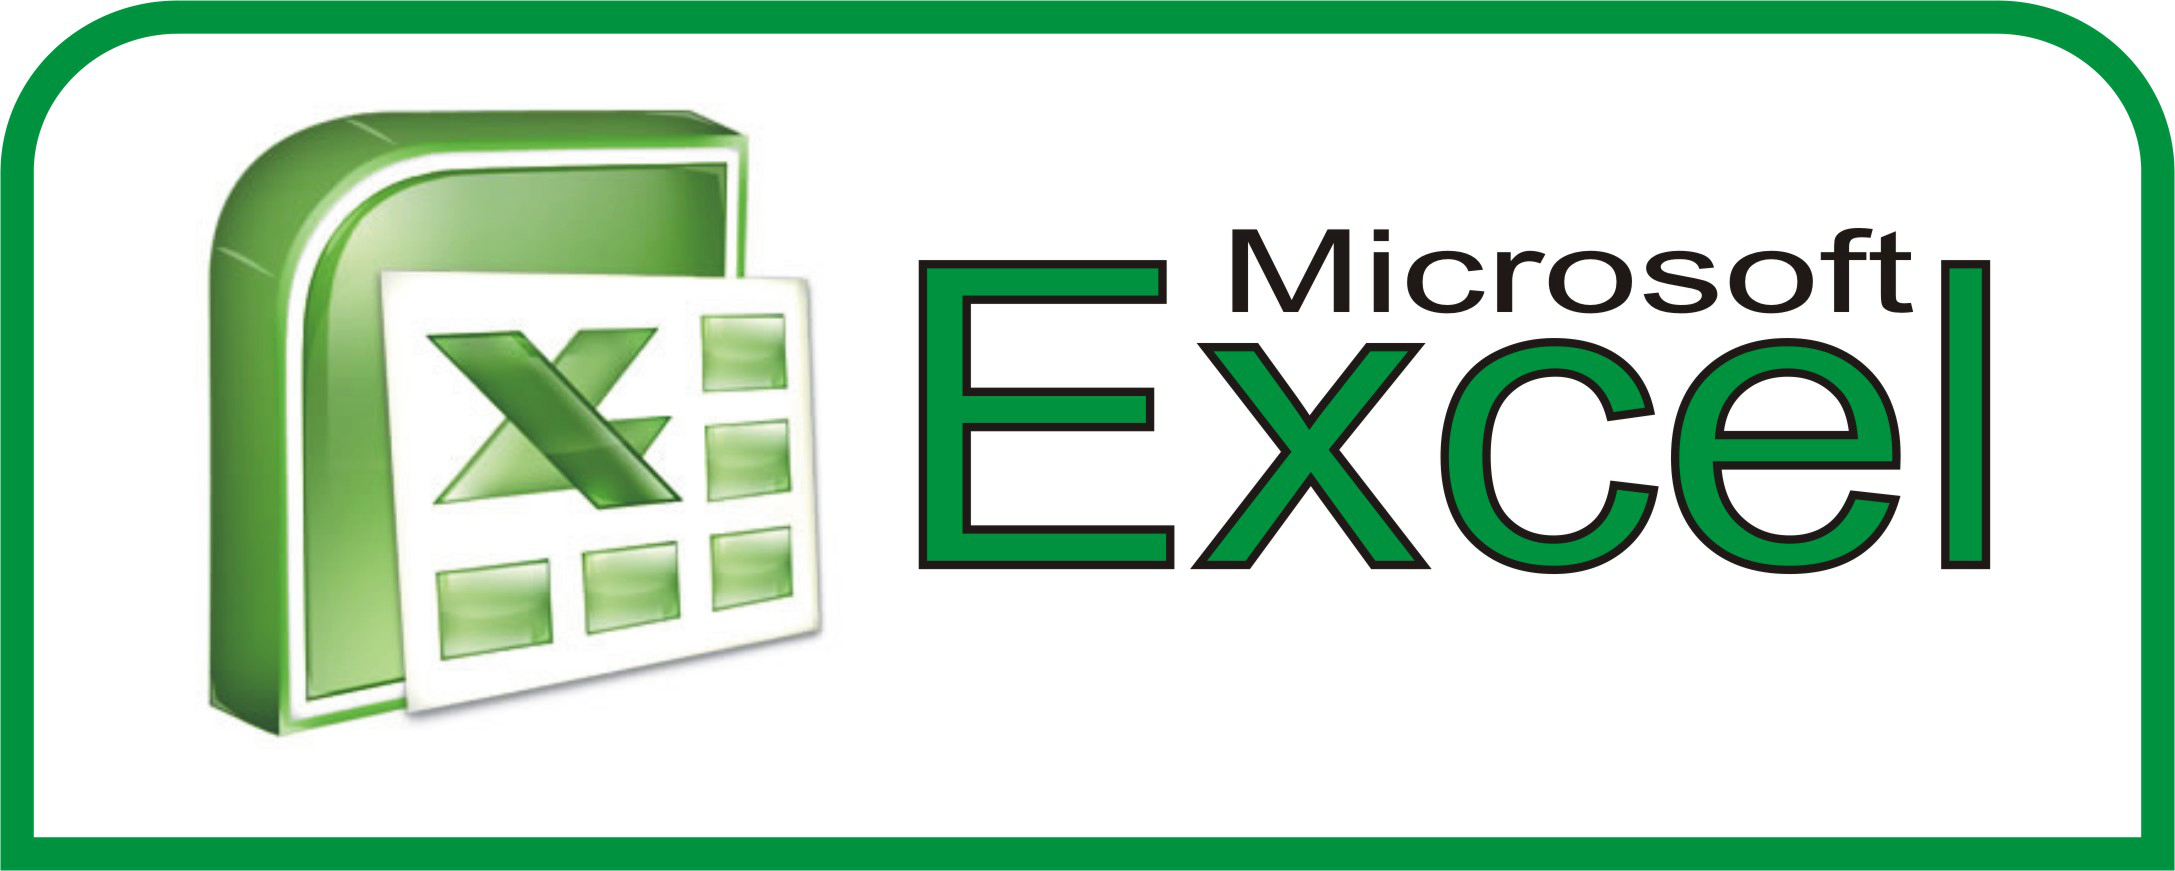 Ediblewildsus  Gorgeous  Excel Shortcuts You Probably Didnt Know About  Techdissected With Foxy Sd Formula In Excel Besides Online Excel Testing For Jobs Furthermore Percentage Formula In Excel With Example With Easy On The Eye Excel Countif Date Also What Is The Use Of Filter In Excel In Addition Staff Rota Template Excel And Qualitative Data Analysis Using Excel As Well As Convert Excel To Word Table Additionally P Value In Excel  From Techdissectedcom With Ediblewildsus  Foxy  Excel Shortcuts You Probably Didnt Know About  Techdissected With Easy On The Eye Sd Formula In Excel Besides Online Excel Testing For Jobs Furthermore Percentage Formula In Excel With Example And Gorgeous Excel Countif Date Also What Is The Use Of Filter In Excel In Addition Staff Rota Template Excel From Techdissectedcom